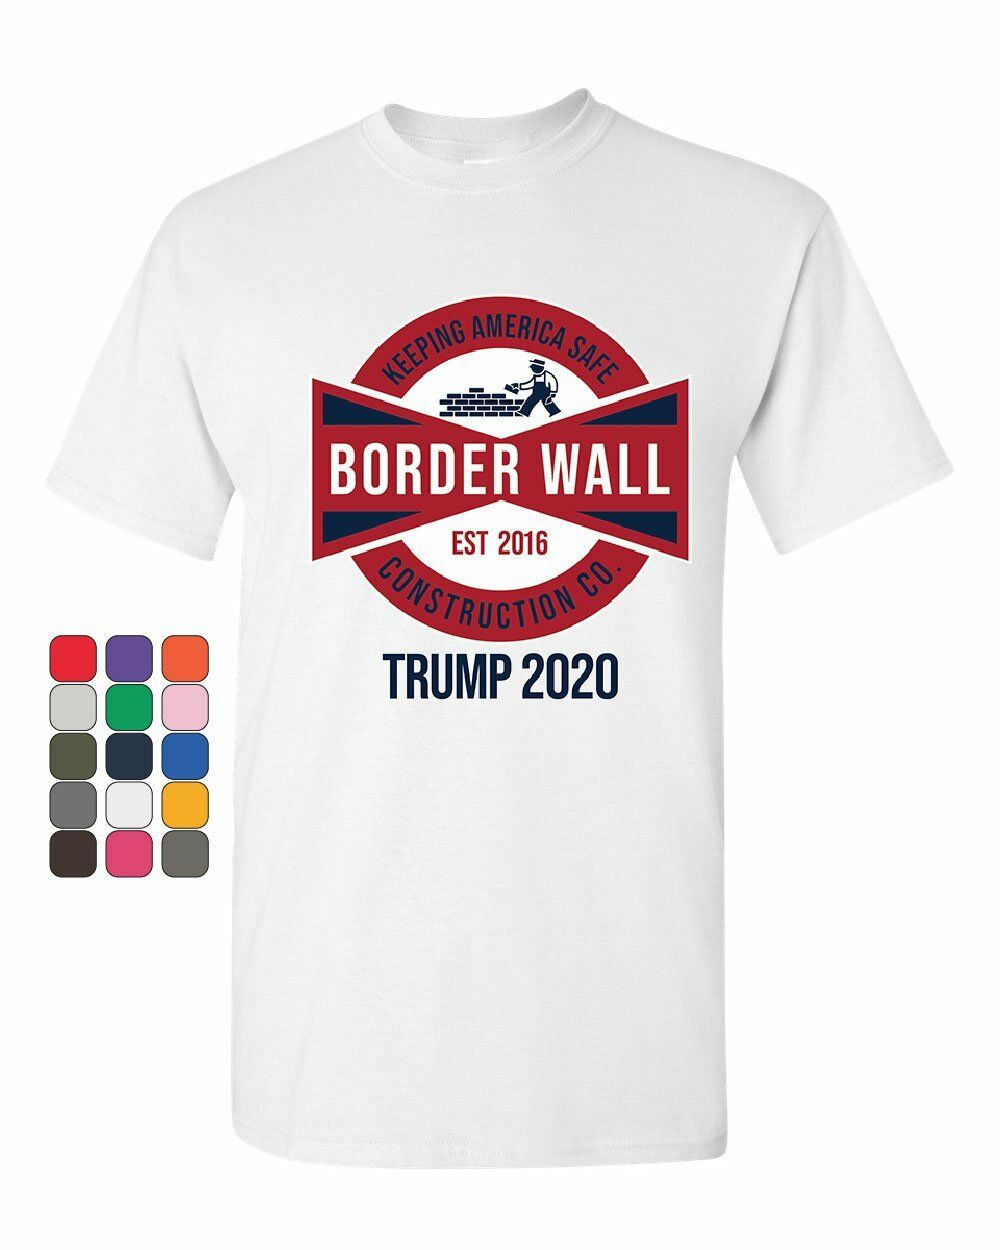 Best Wall Safes 2020 Border Wall Keep America Safe T Shirt Trump For President 2020